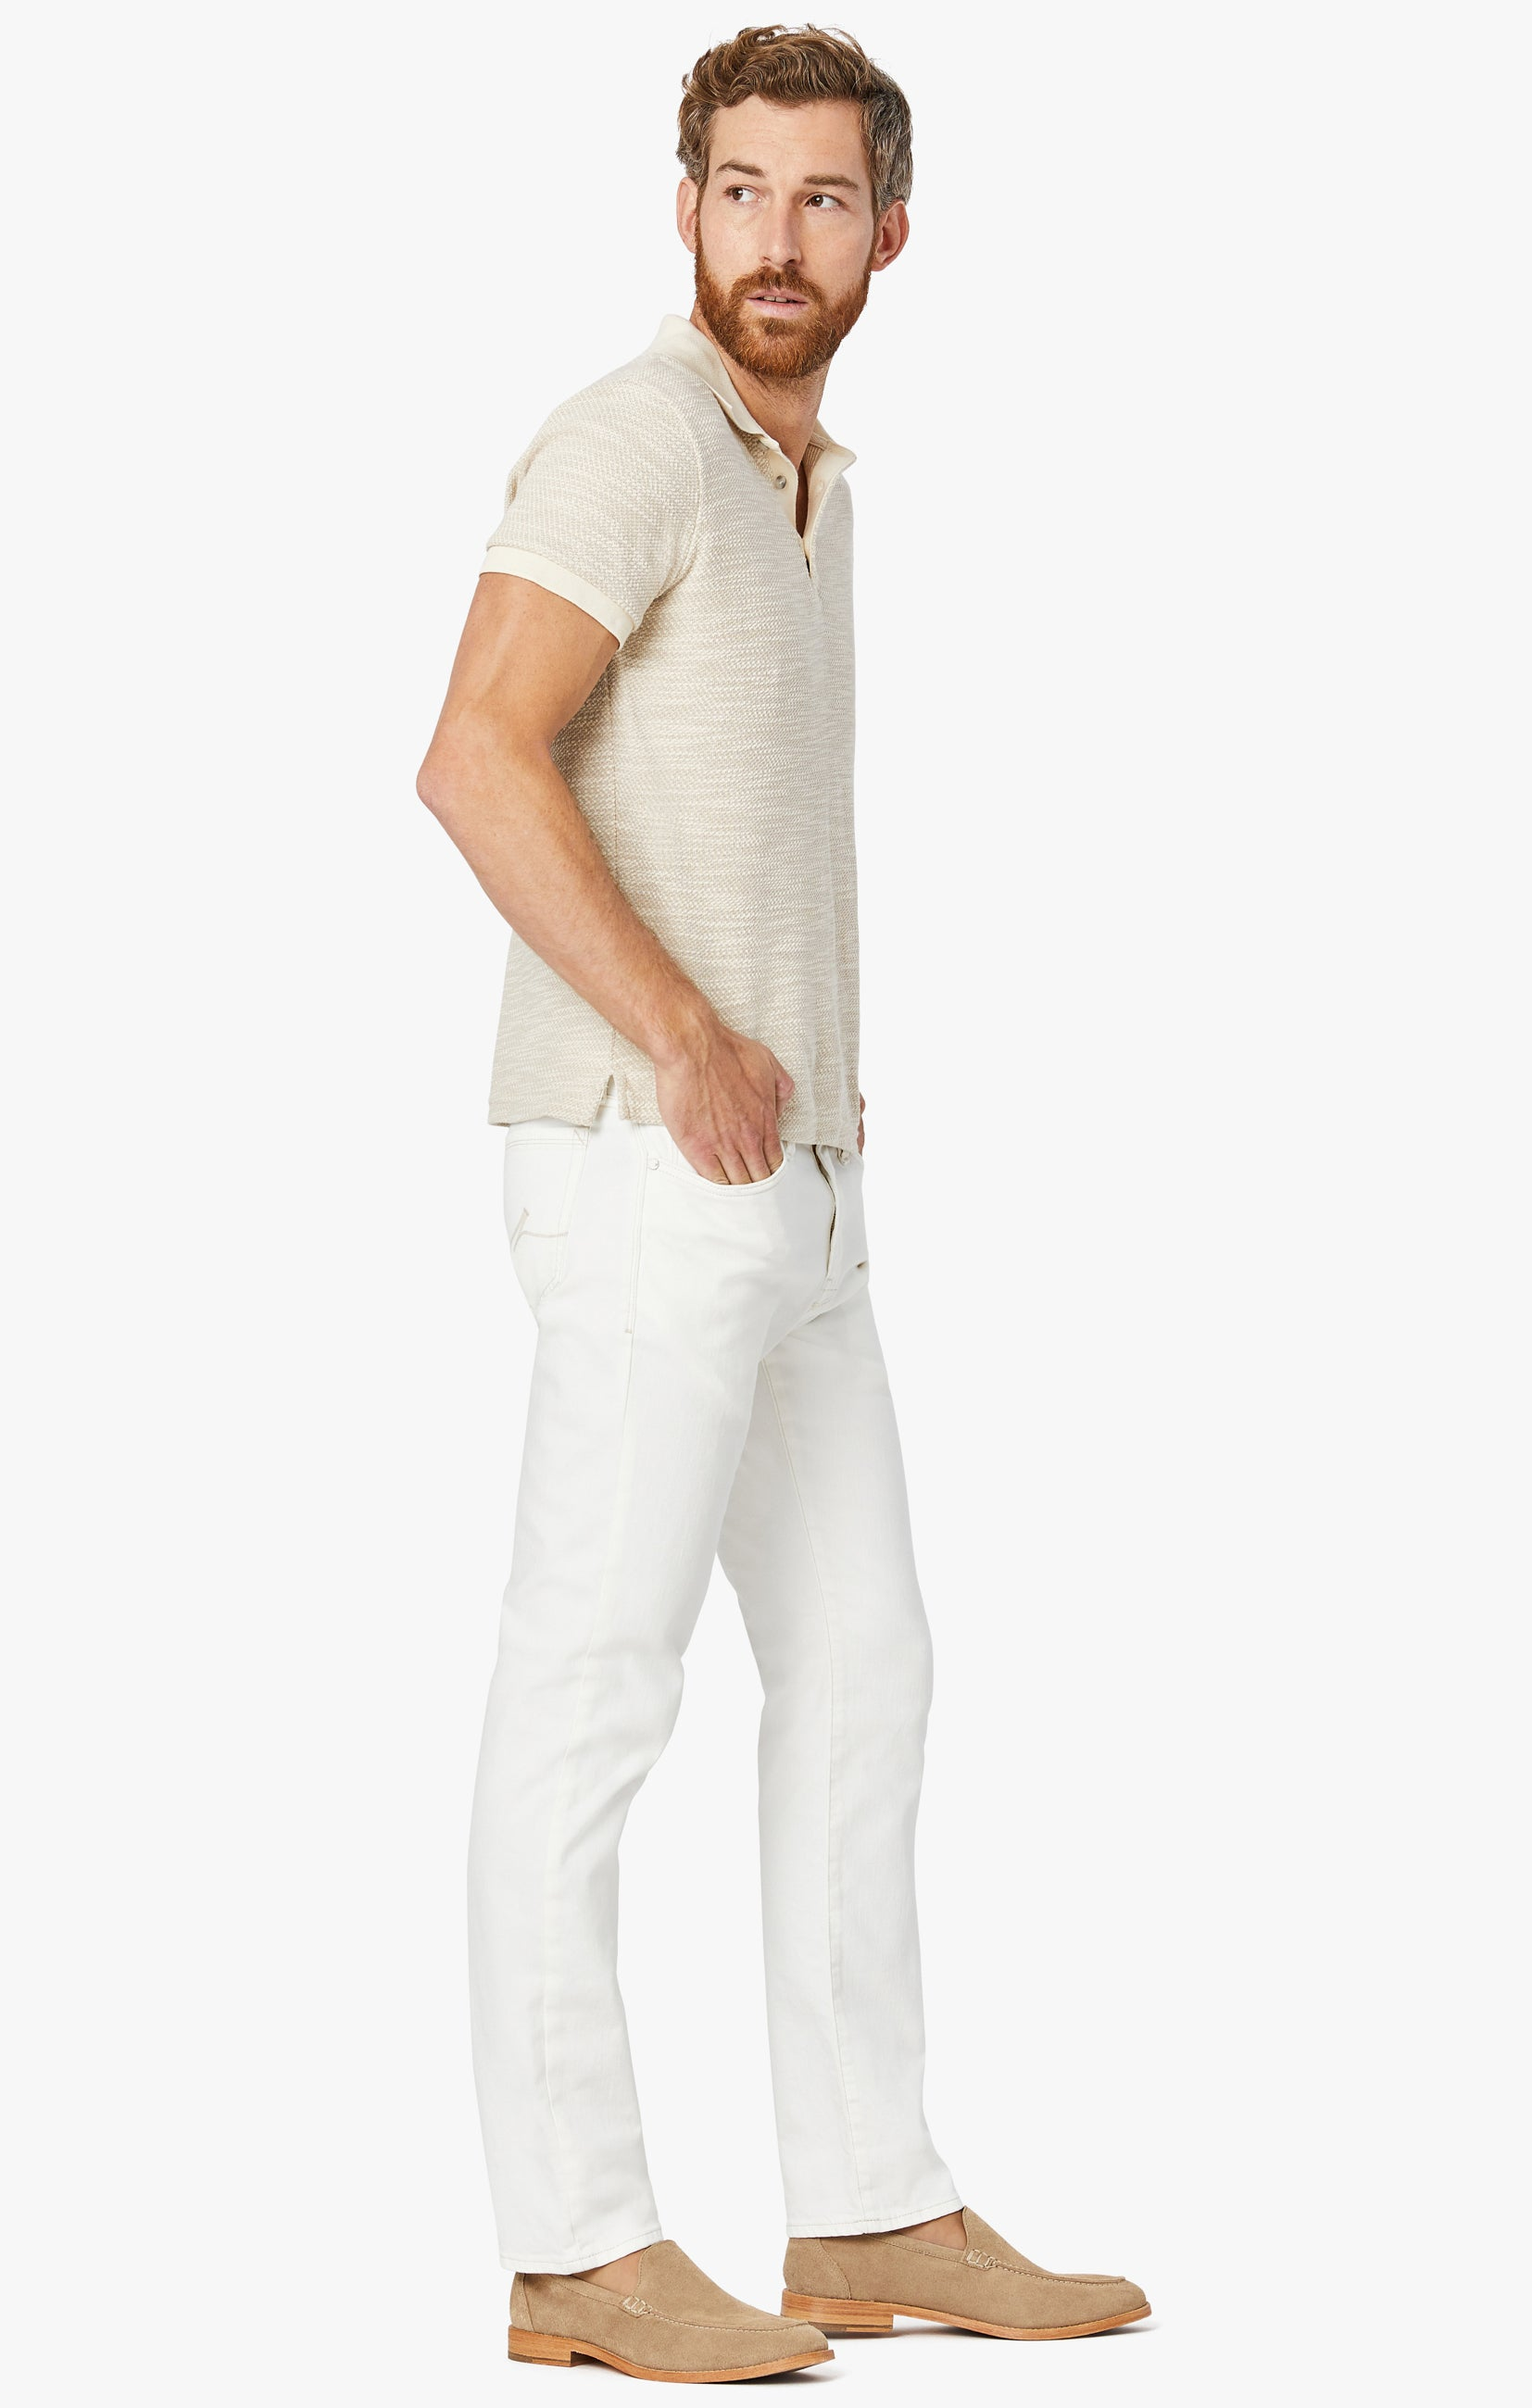 Courage Straight Leg Jeans in White Denim Image 4